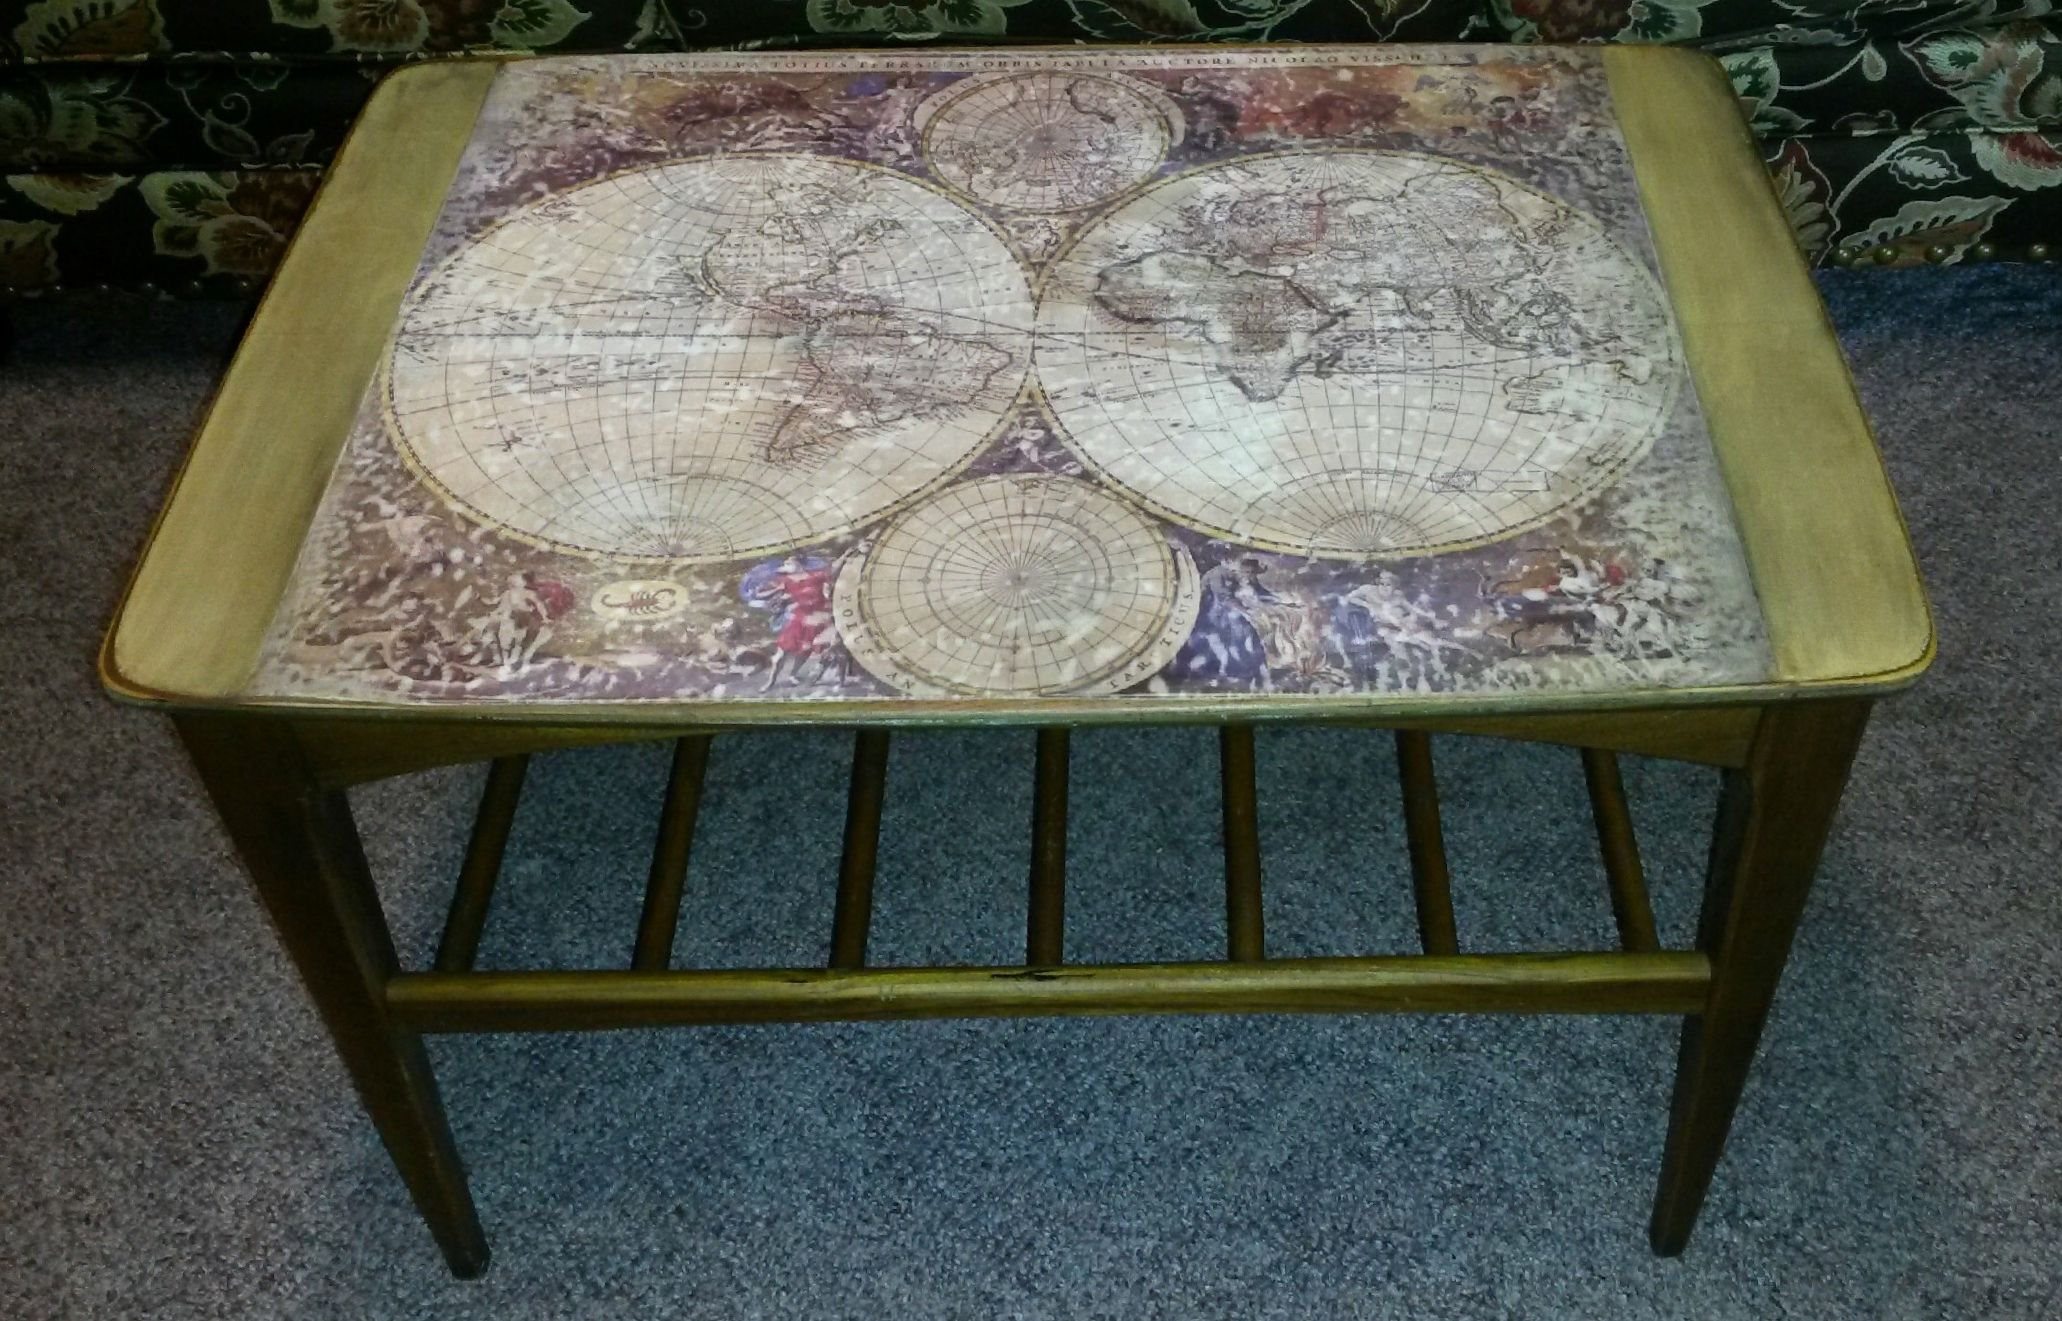 Old world map decoupaged onto coffee table top Furniture redo